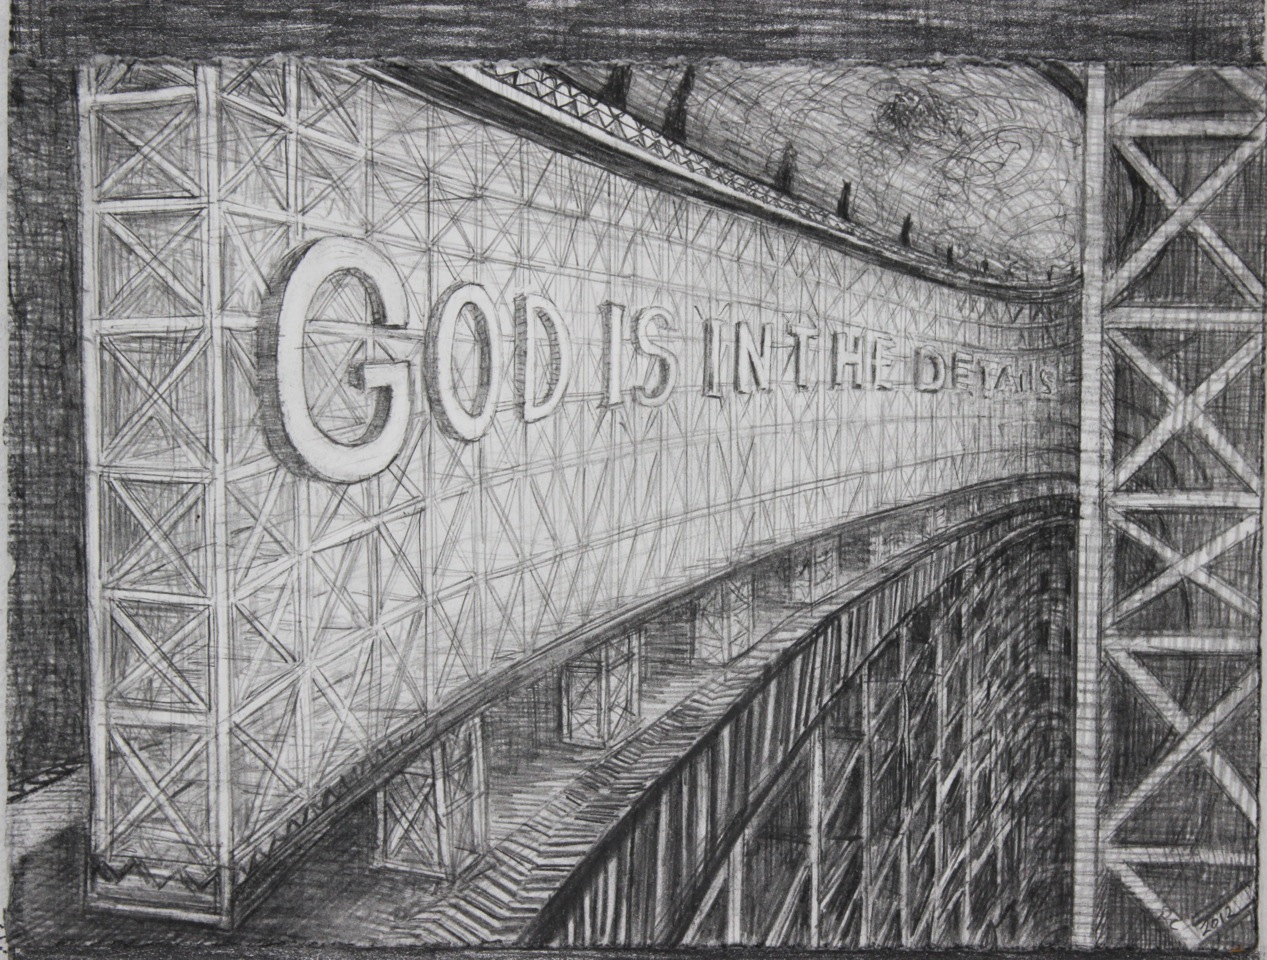 God is in the Details